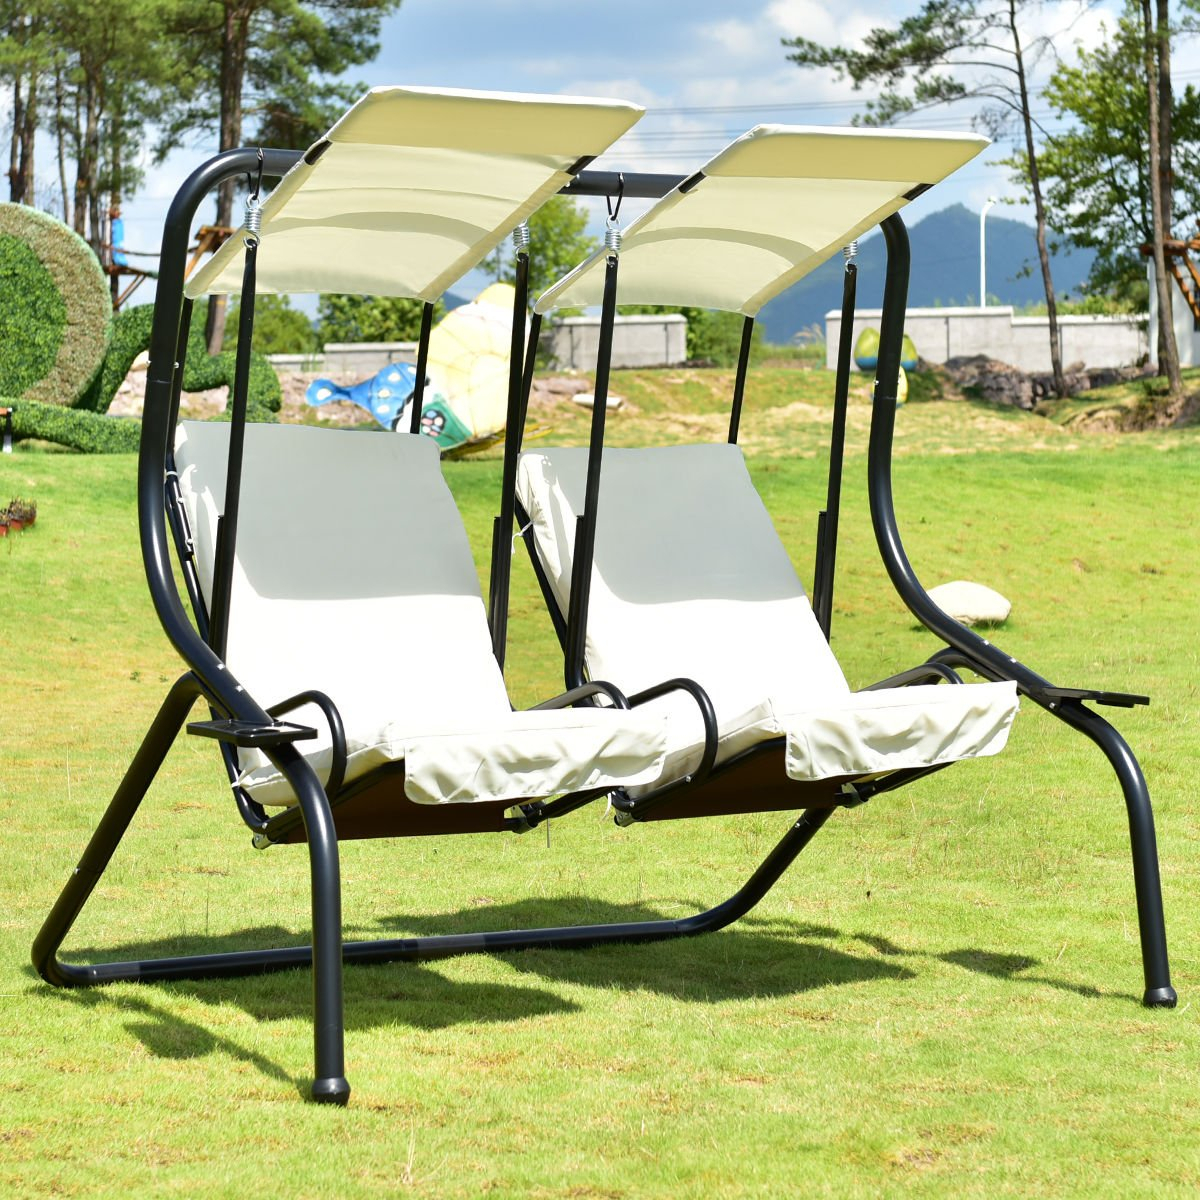 Tangkula 3 Person Patio Swing Glider Outdoor Swing Hammock Throughout Black Outdoor Durable Steel Frame Patio Swing Glider Bench Chairs (Photo 16 of 25)